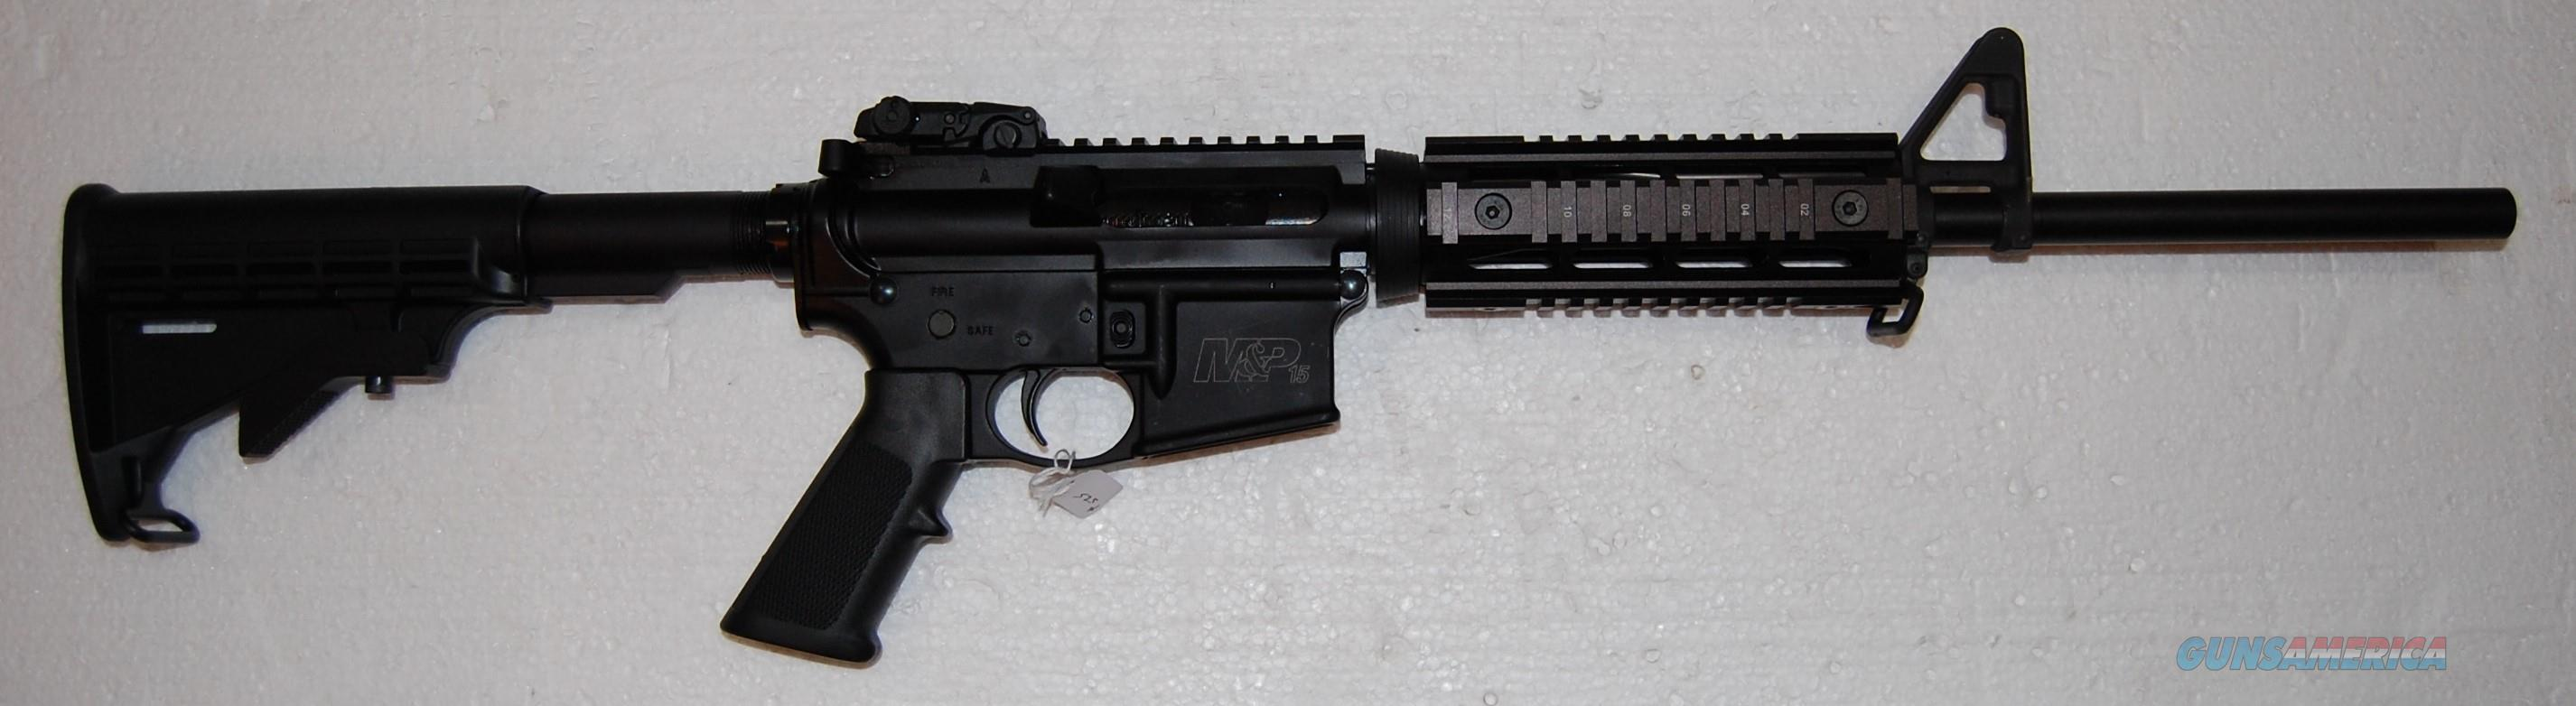 Smith & Wessom M&P 15  Guns > Rifles > Smith & Wesson Rifles > M&P